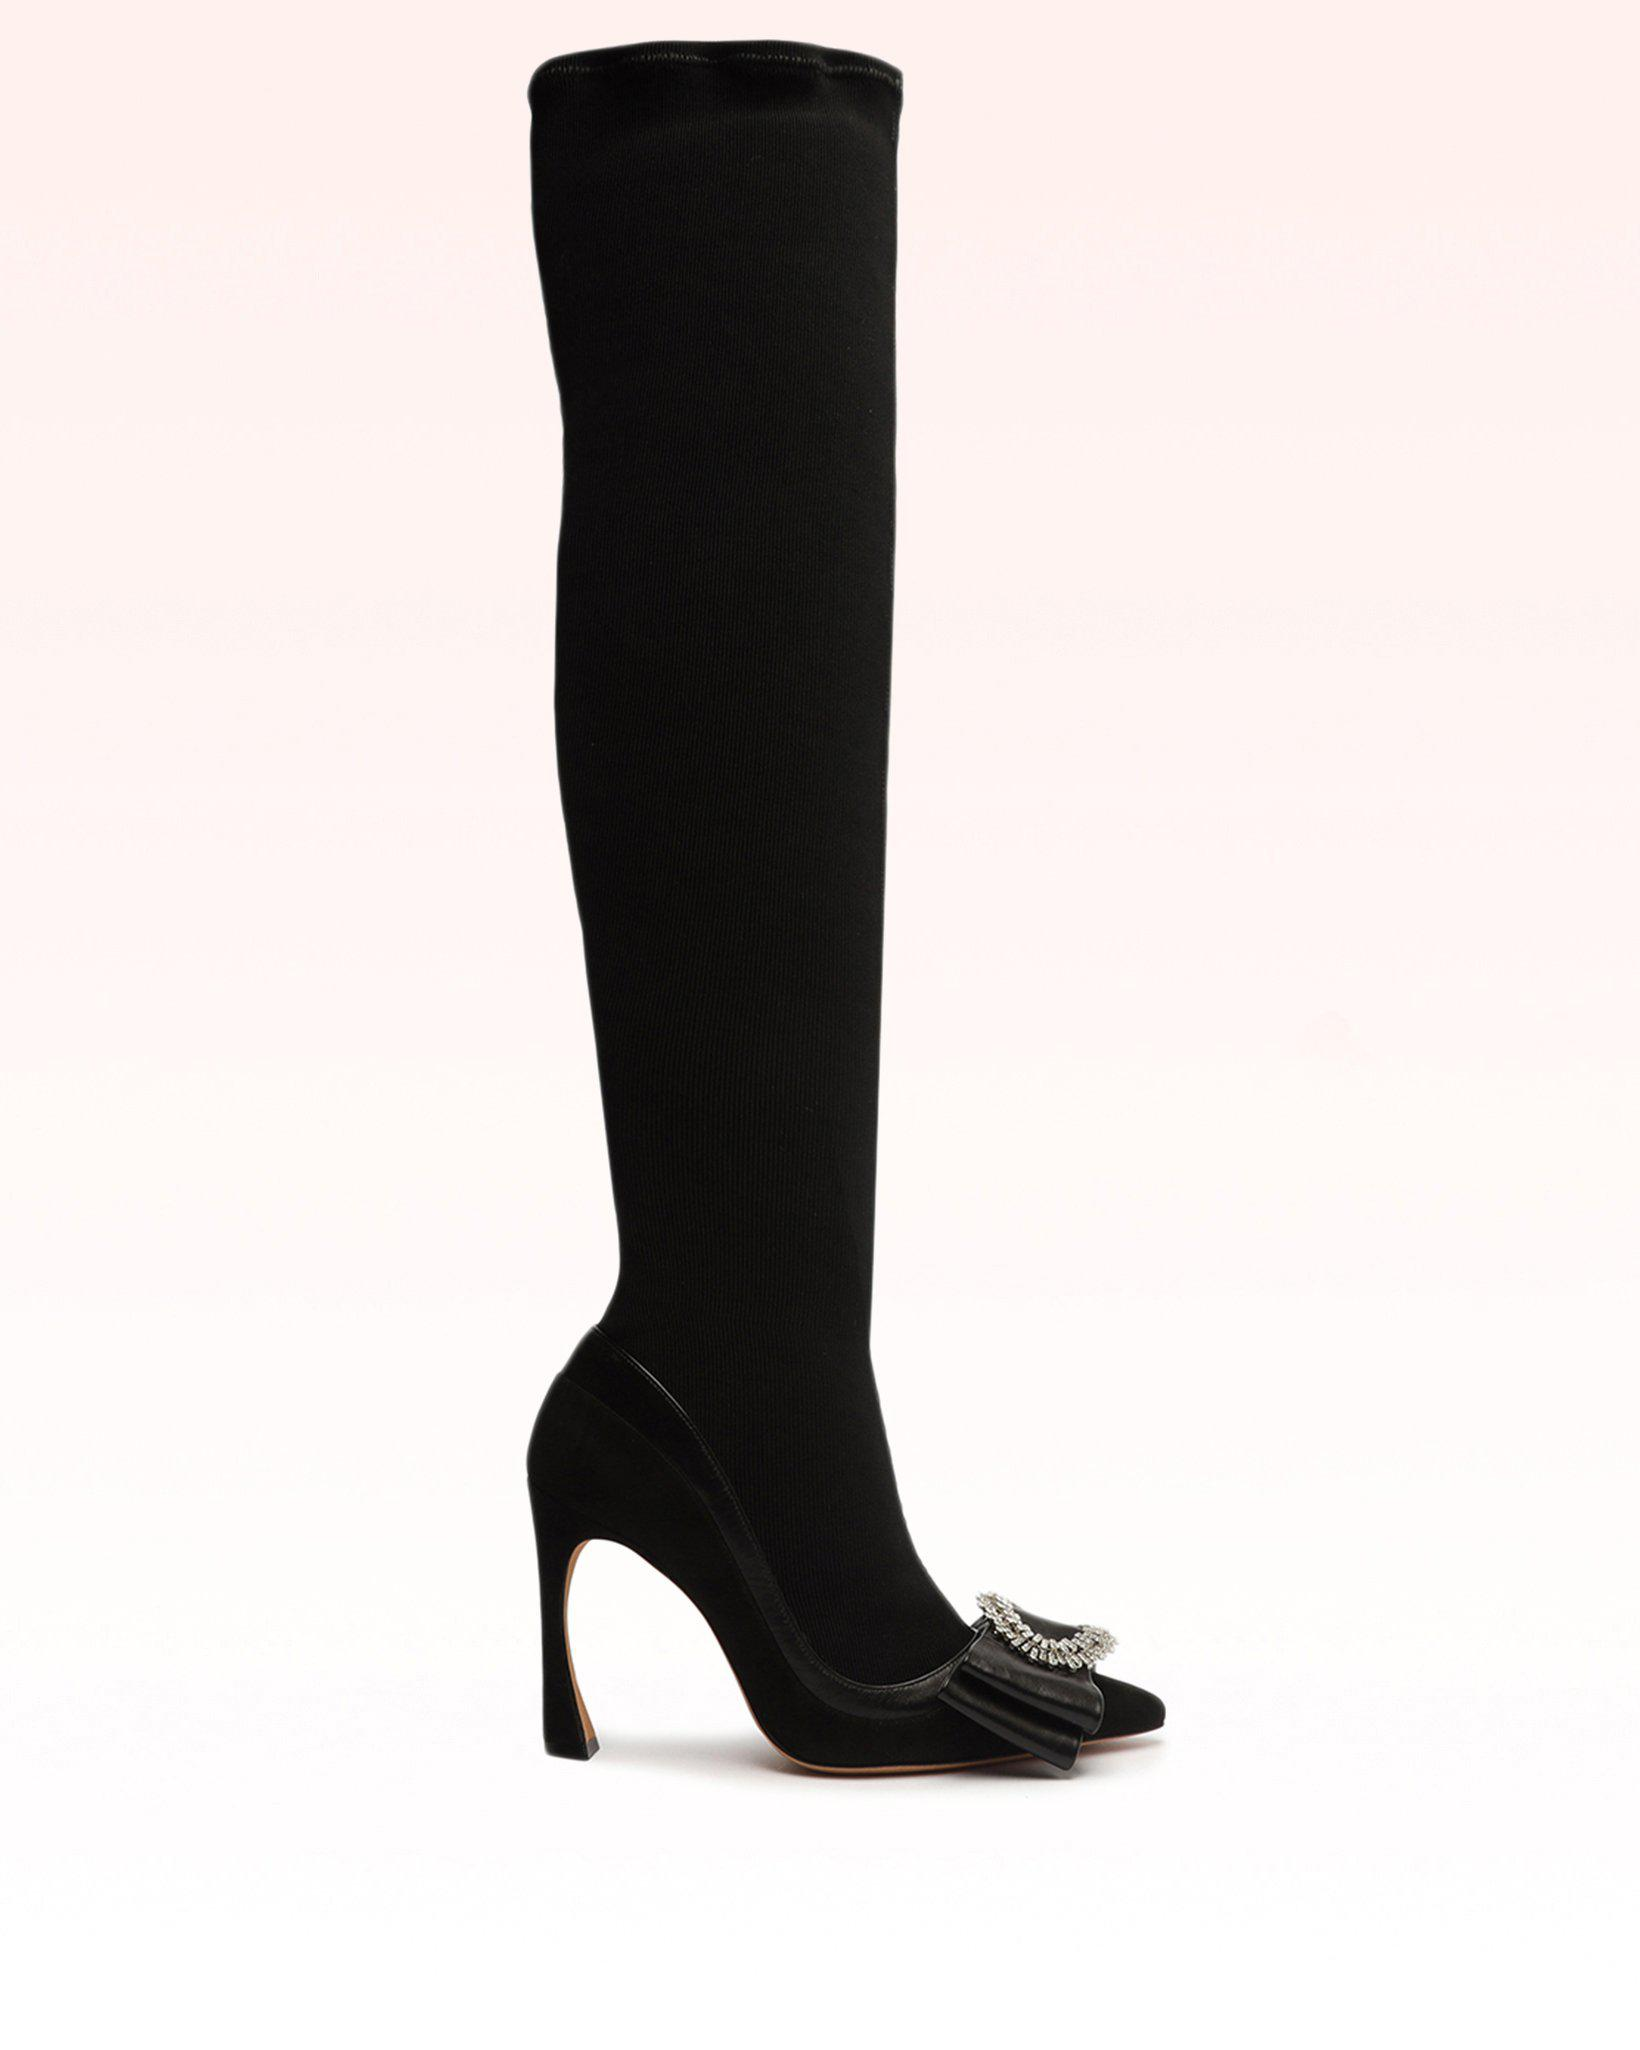 Maddie Wave Over The Knee Boot